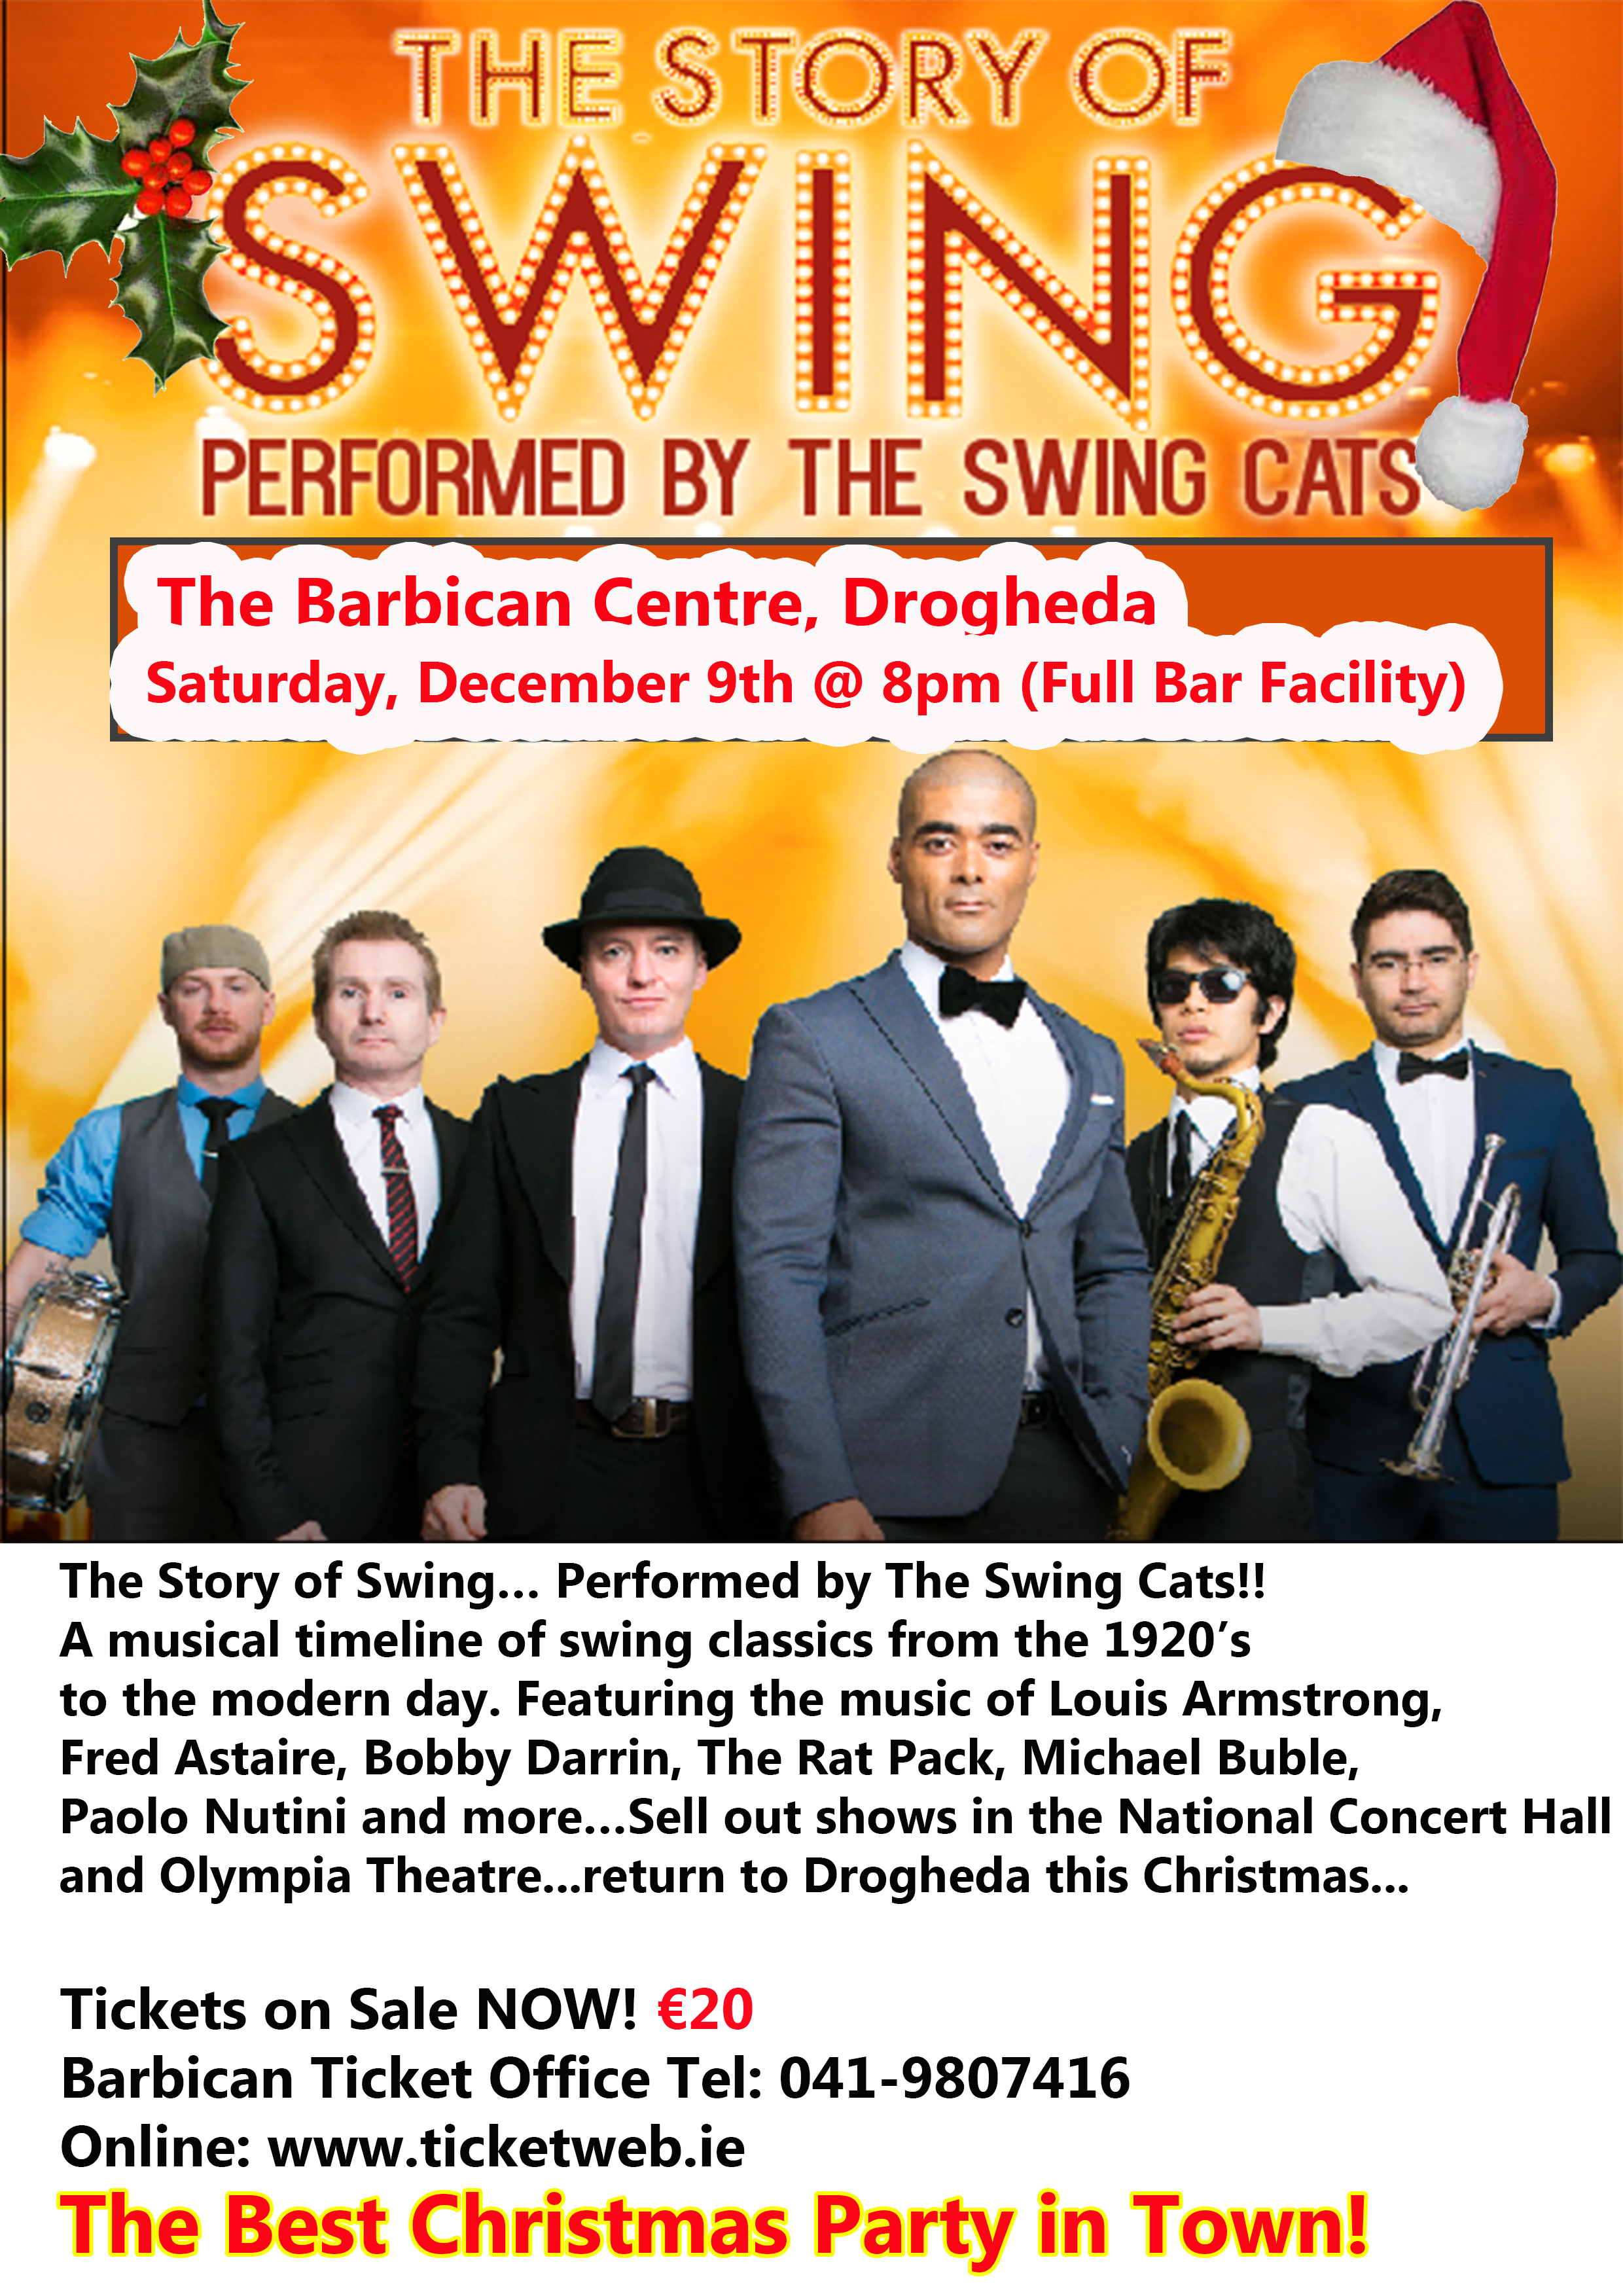 The Swing Cats Christmas Show - The Barbican Centre